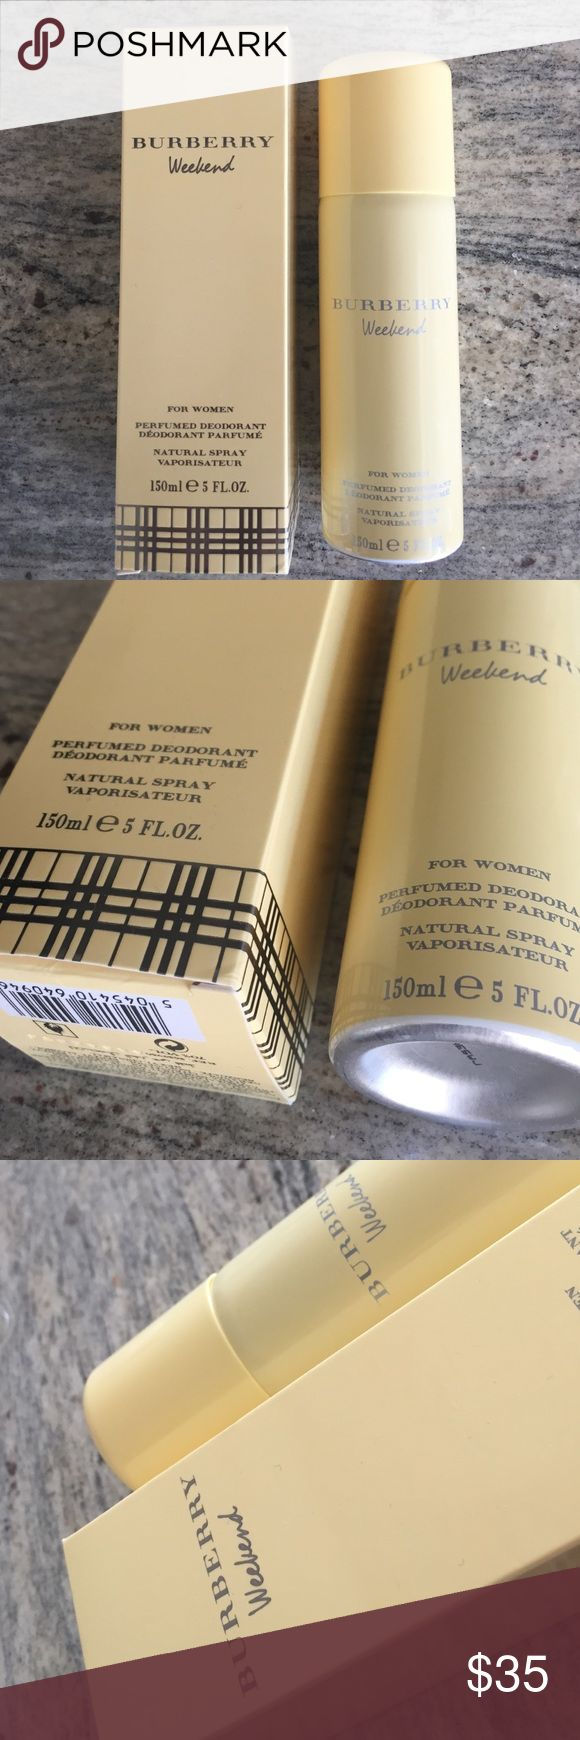 Burberry Weekend deodorant Brand new full bottle Burberry Other